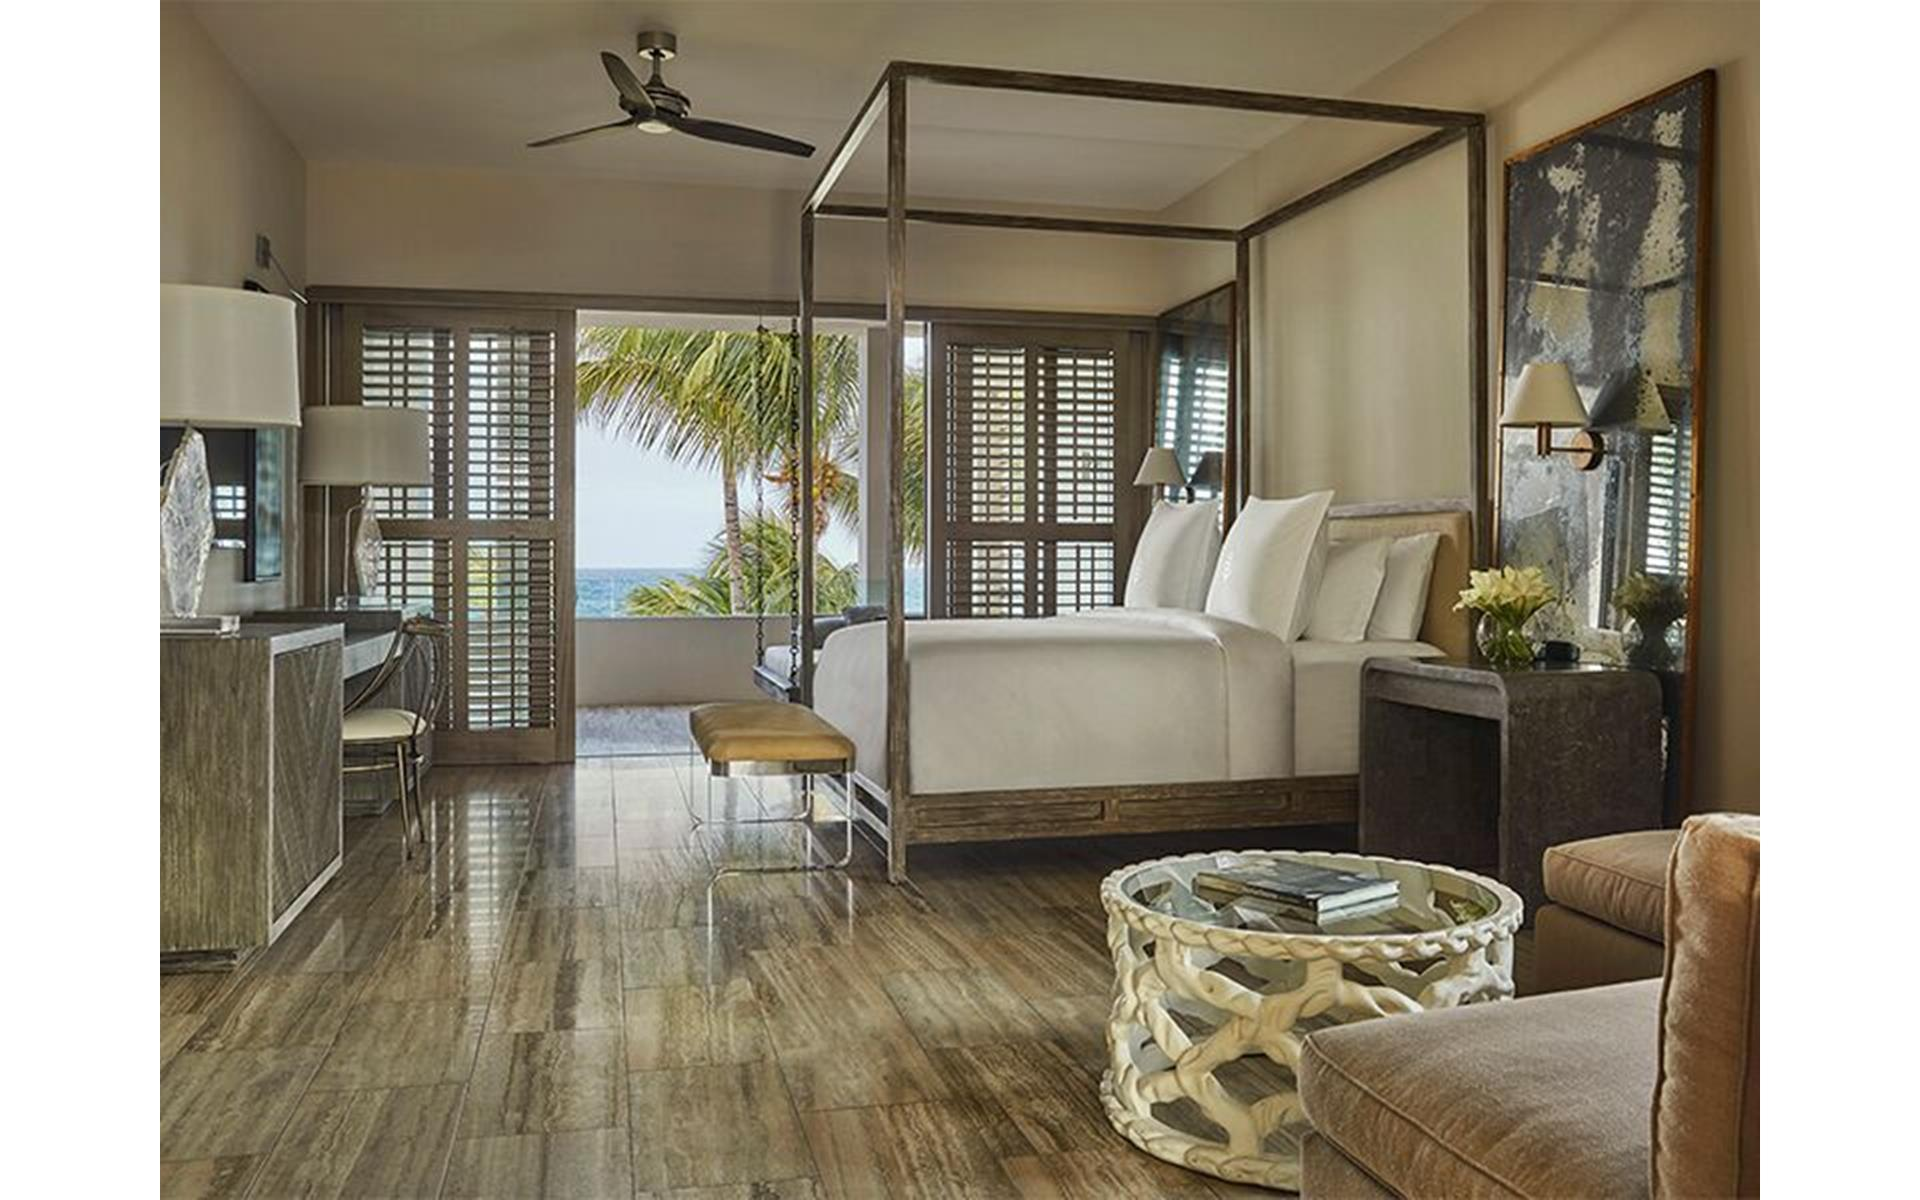 Four Season Resort Residences-36 apt 325-326, Anguilla, West Indies